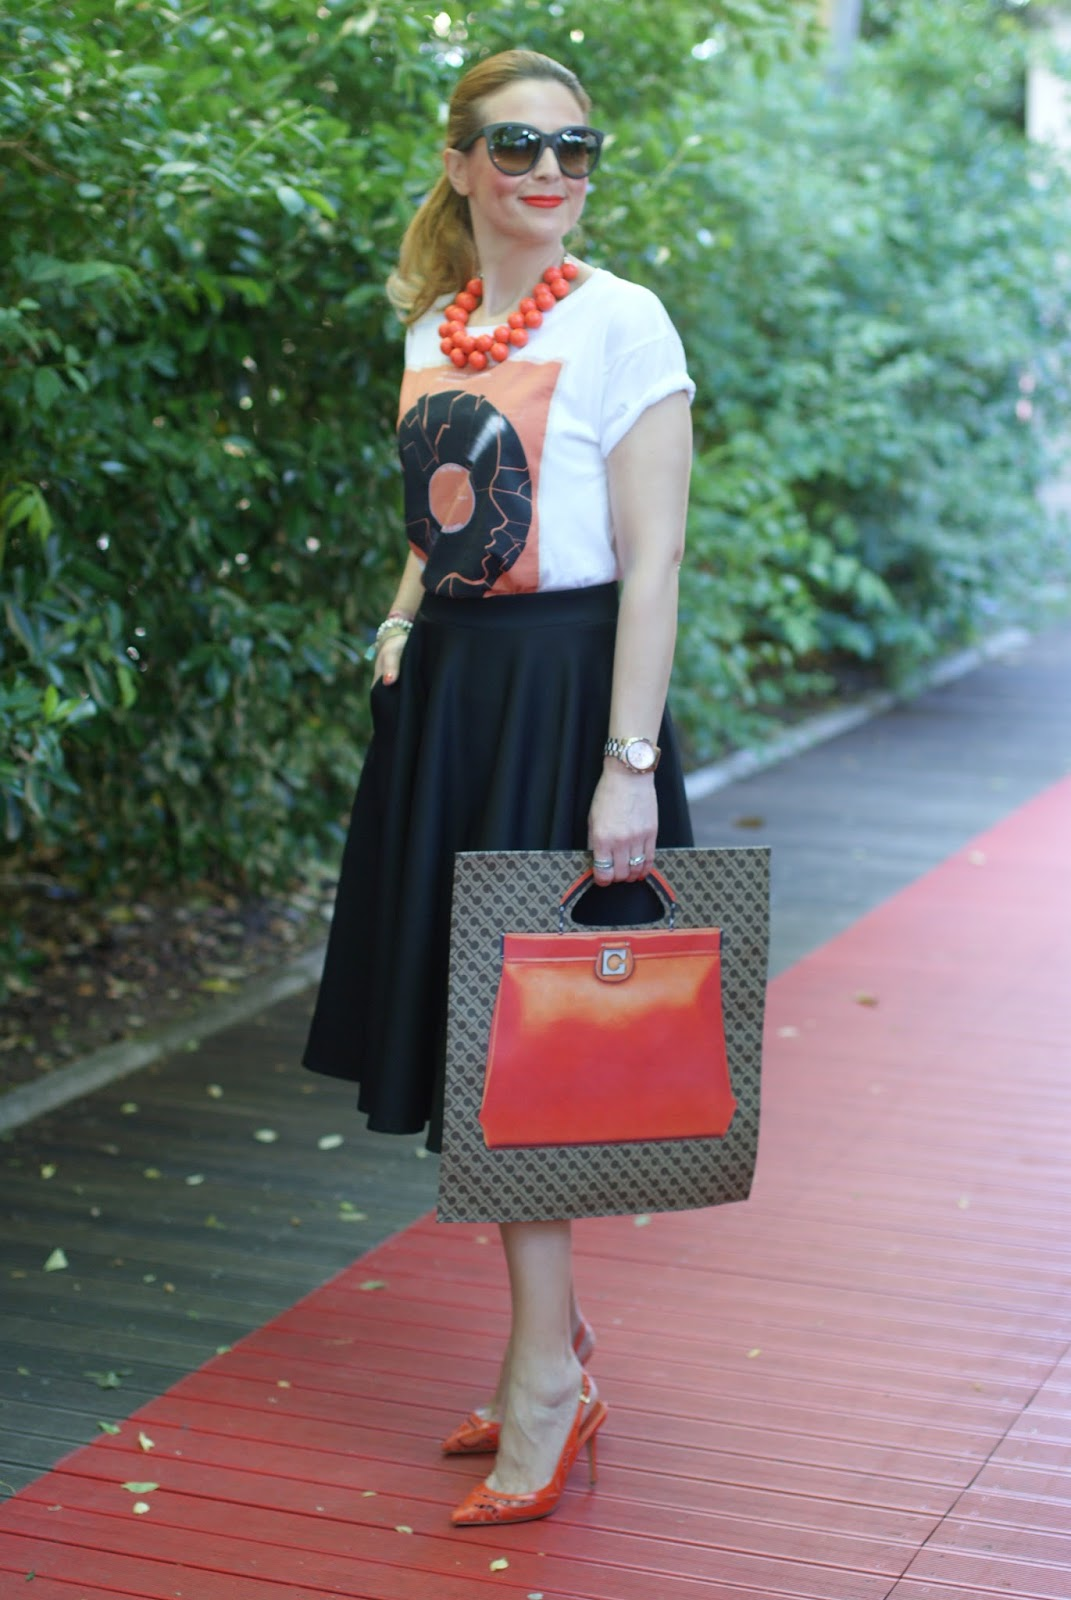 Gherardini Piattina Anniversary bag, orange flat bag, Le Silla shoes, Fashion and Cookies fashion blogger